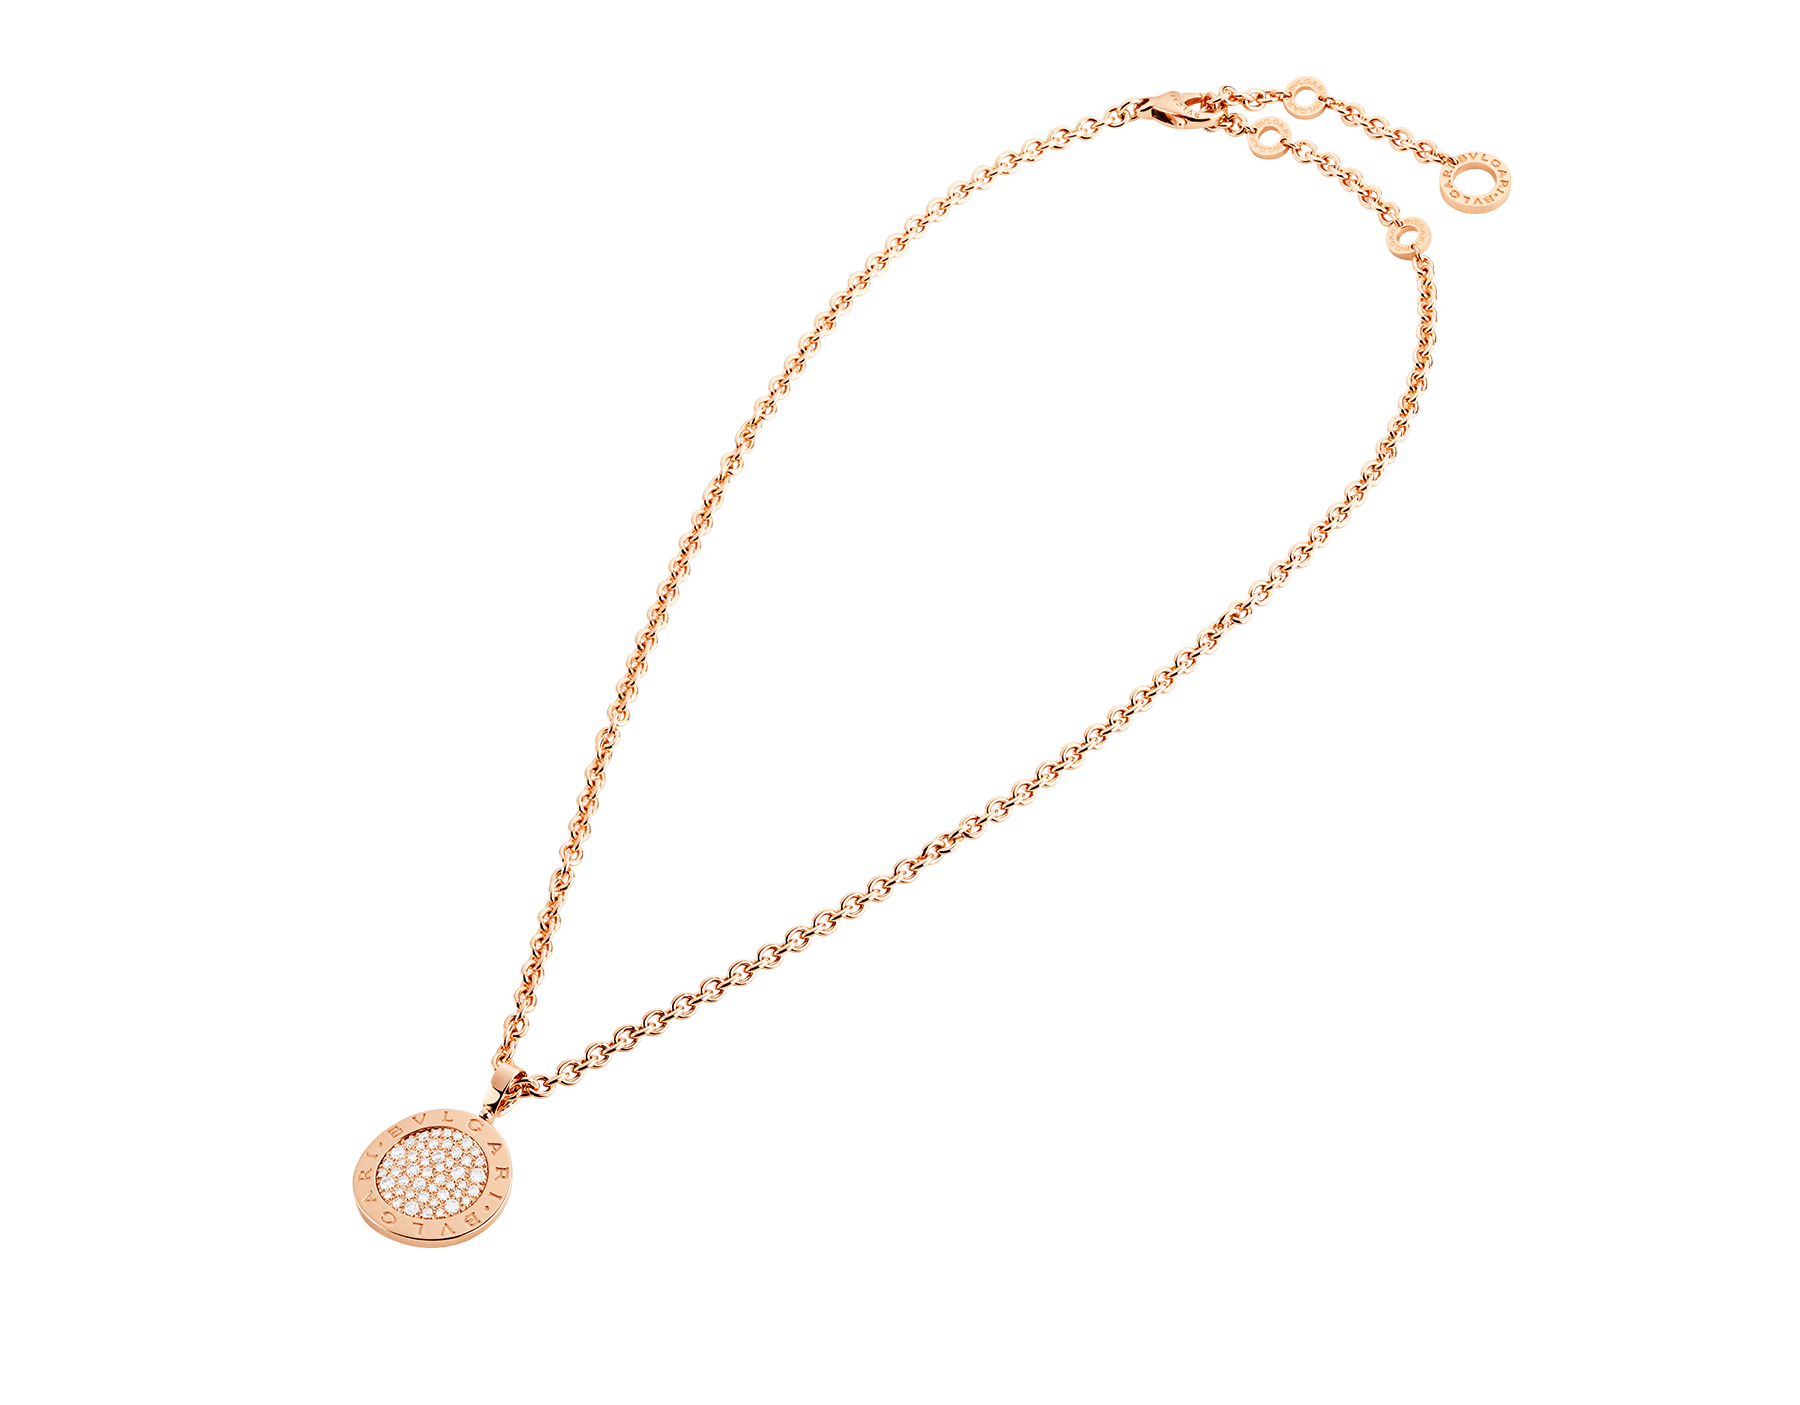 BVLGARI BVLGARI necklace with 18 kt rose gold chain and 18 kt rose gold pendant set with pavé diamonds 345277 image 2